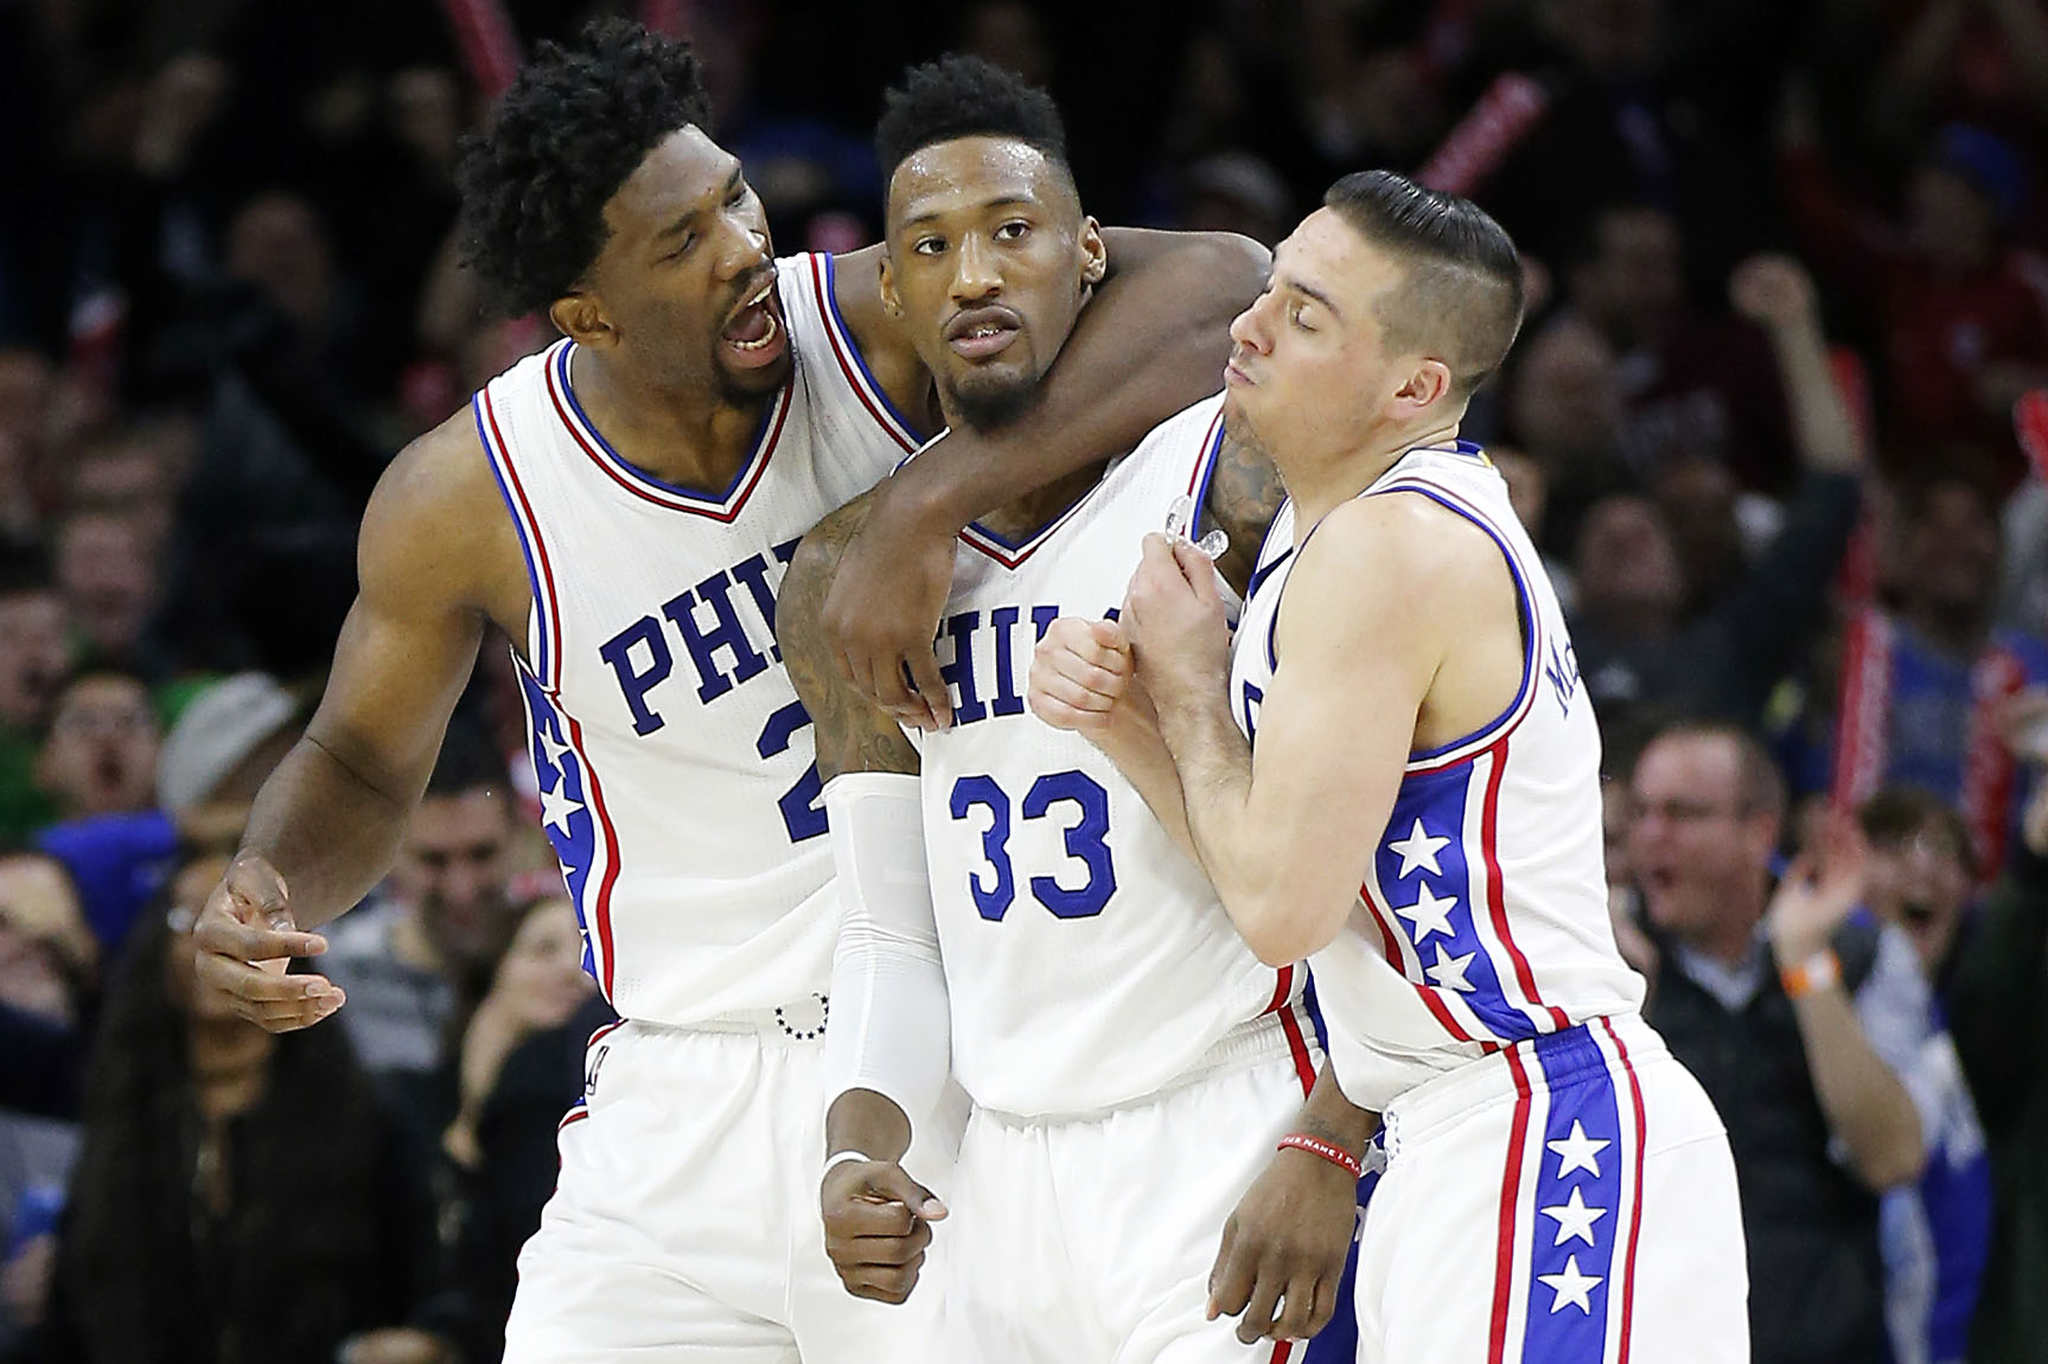 Sixers forward Robert Covington celebrates his game winning three-point basket with teammates Joel Embiid and T.J. McConnell against the Portland Trail Blazers on Friday, January 20, 2017.  YONG KIM / Staff Photographer